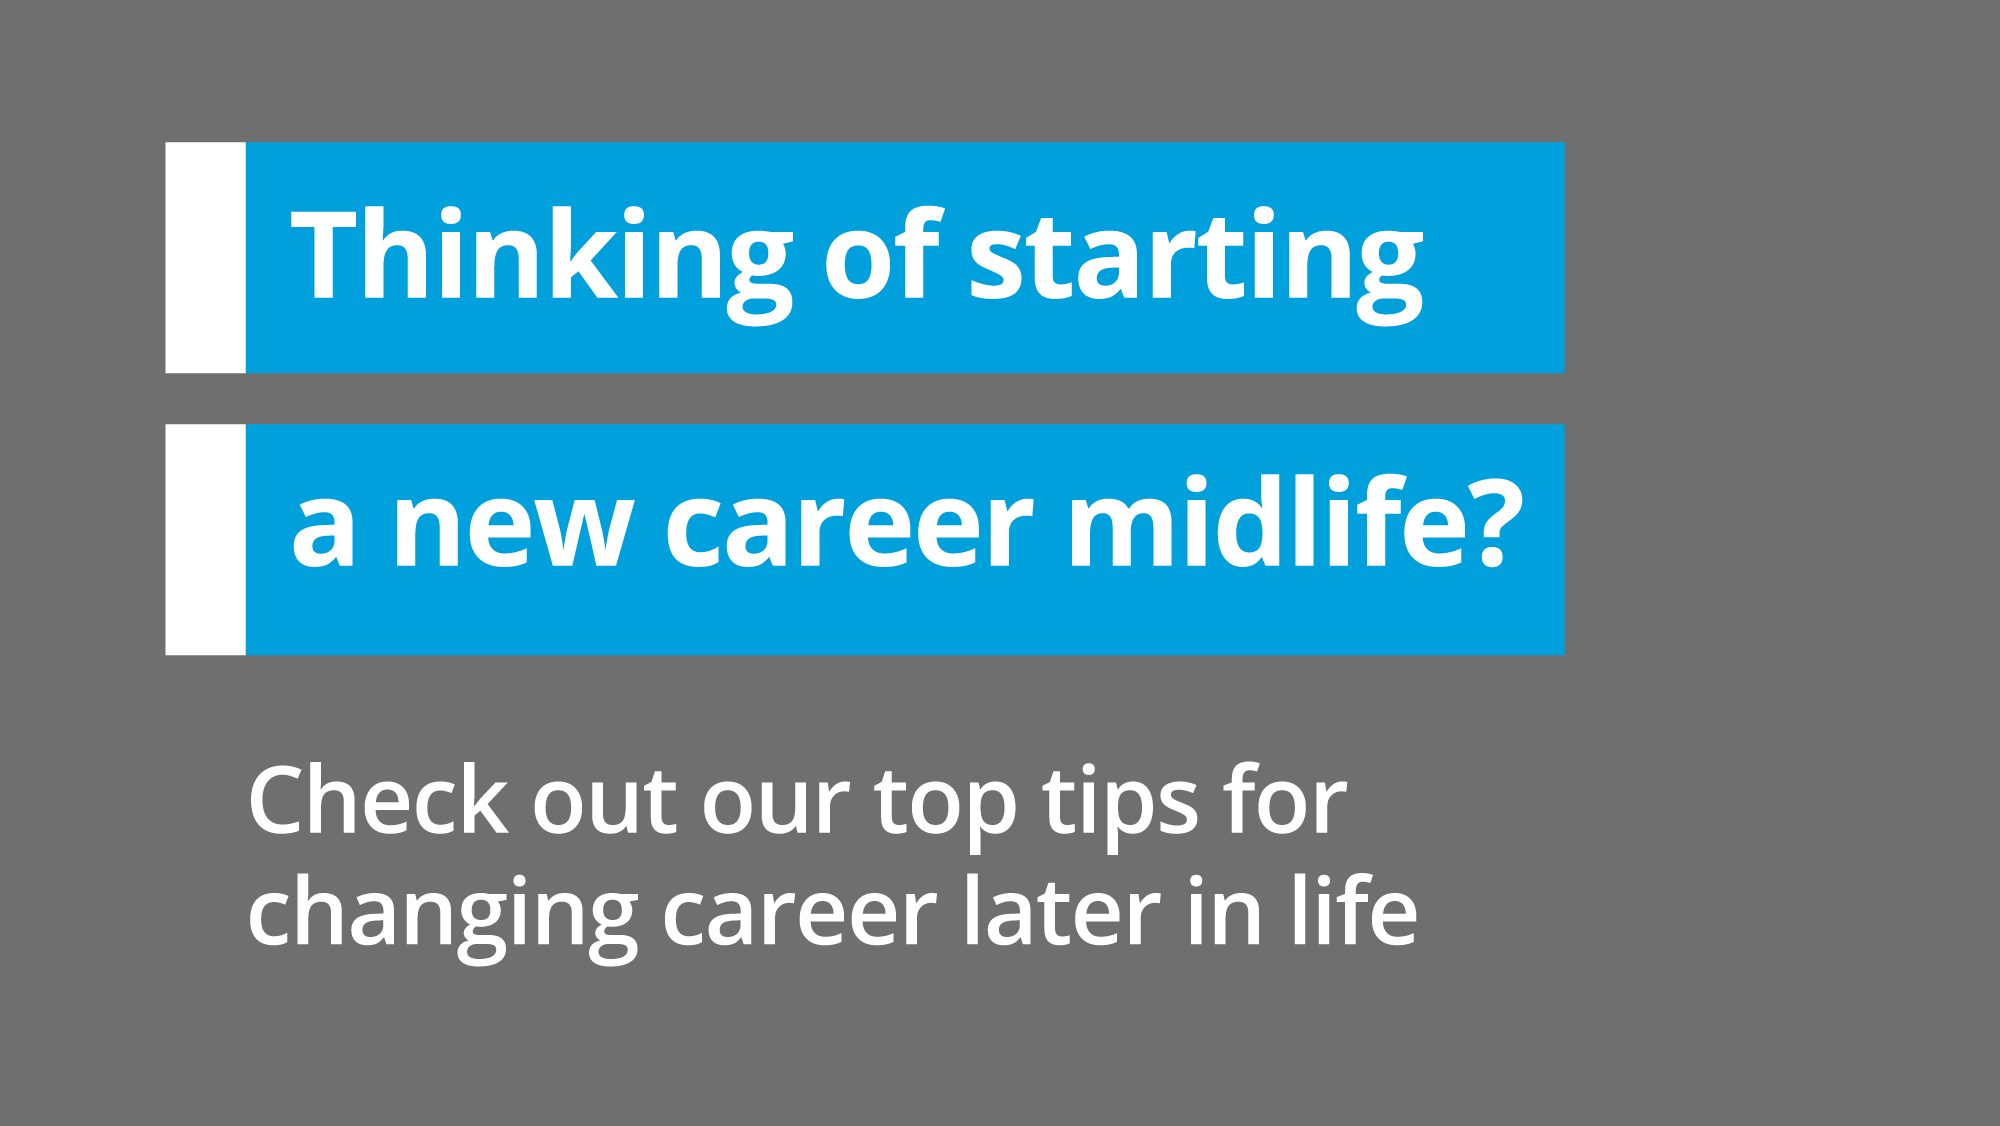 Thinking of starting a new career in midlife?